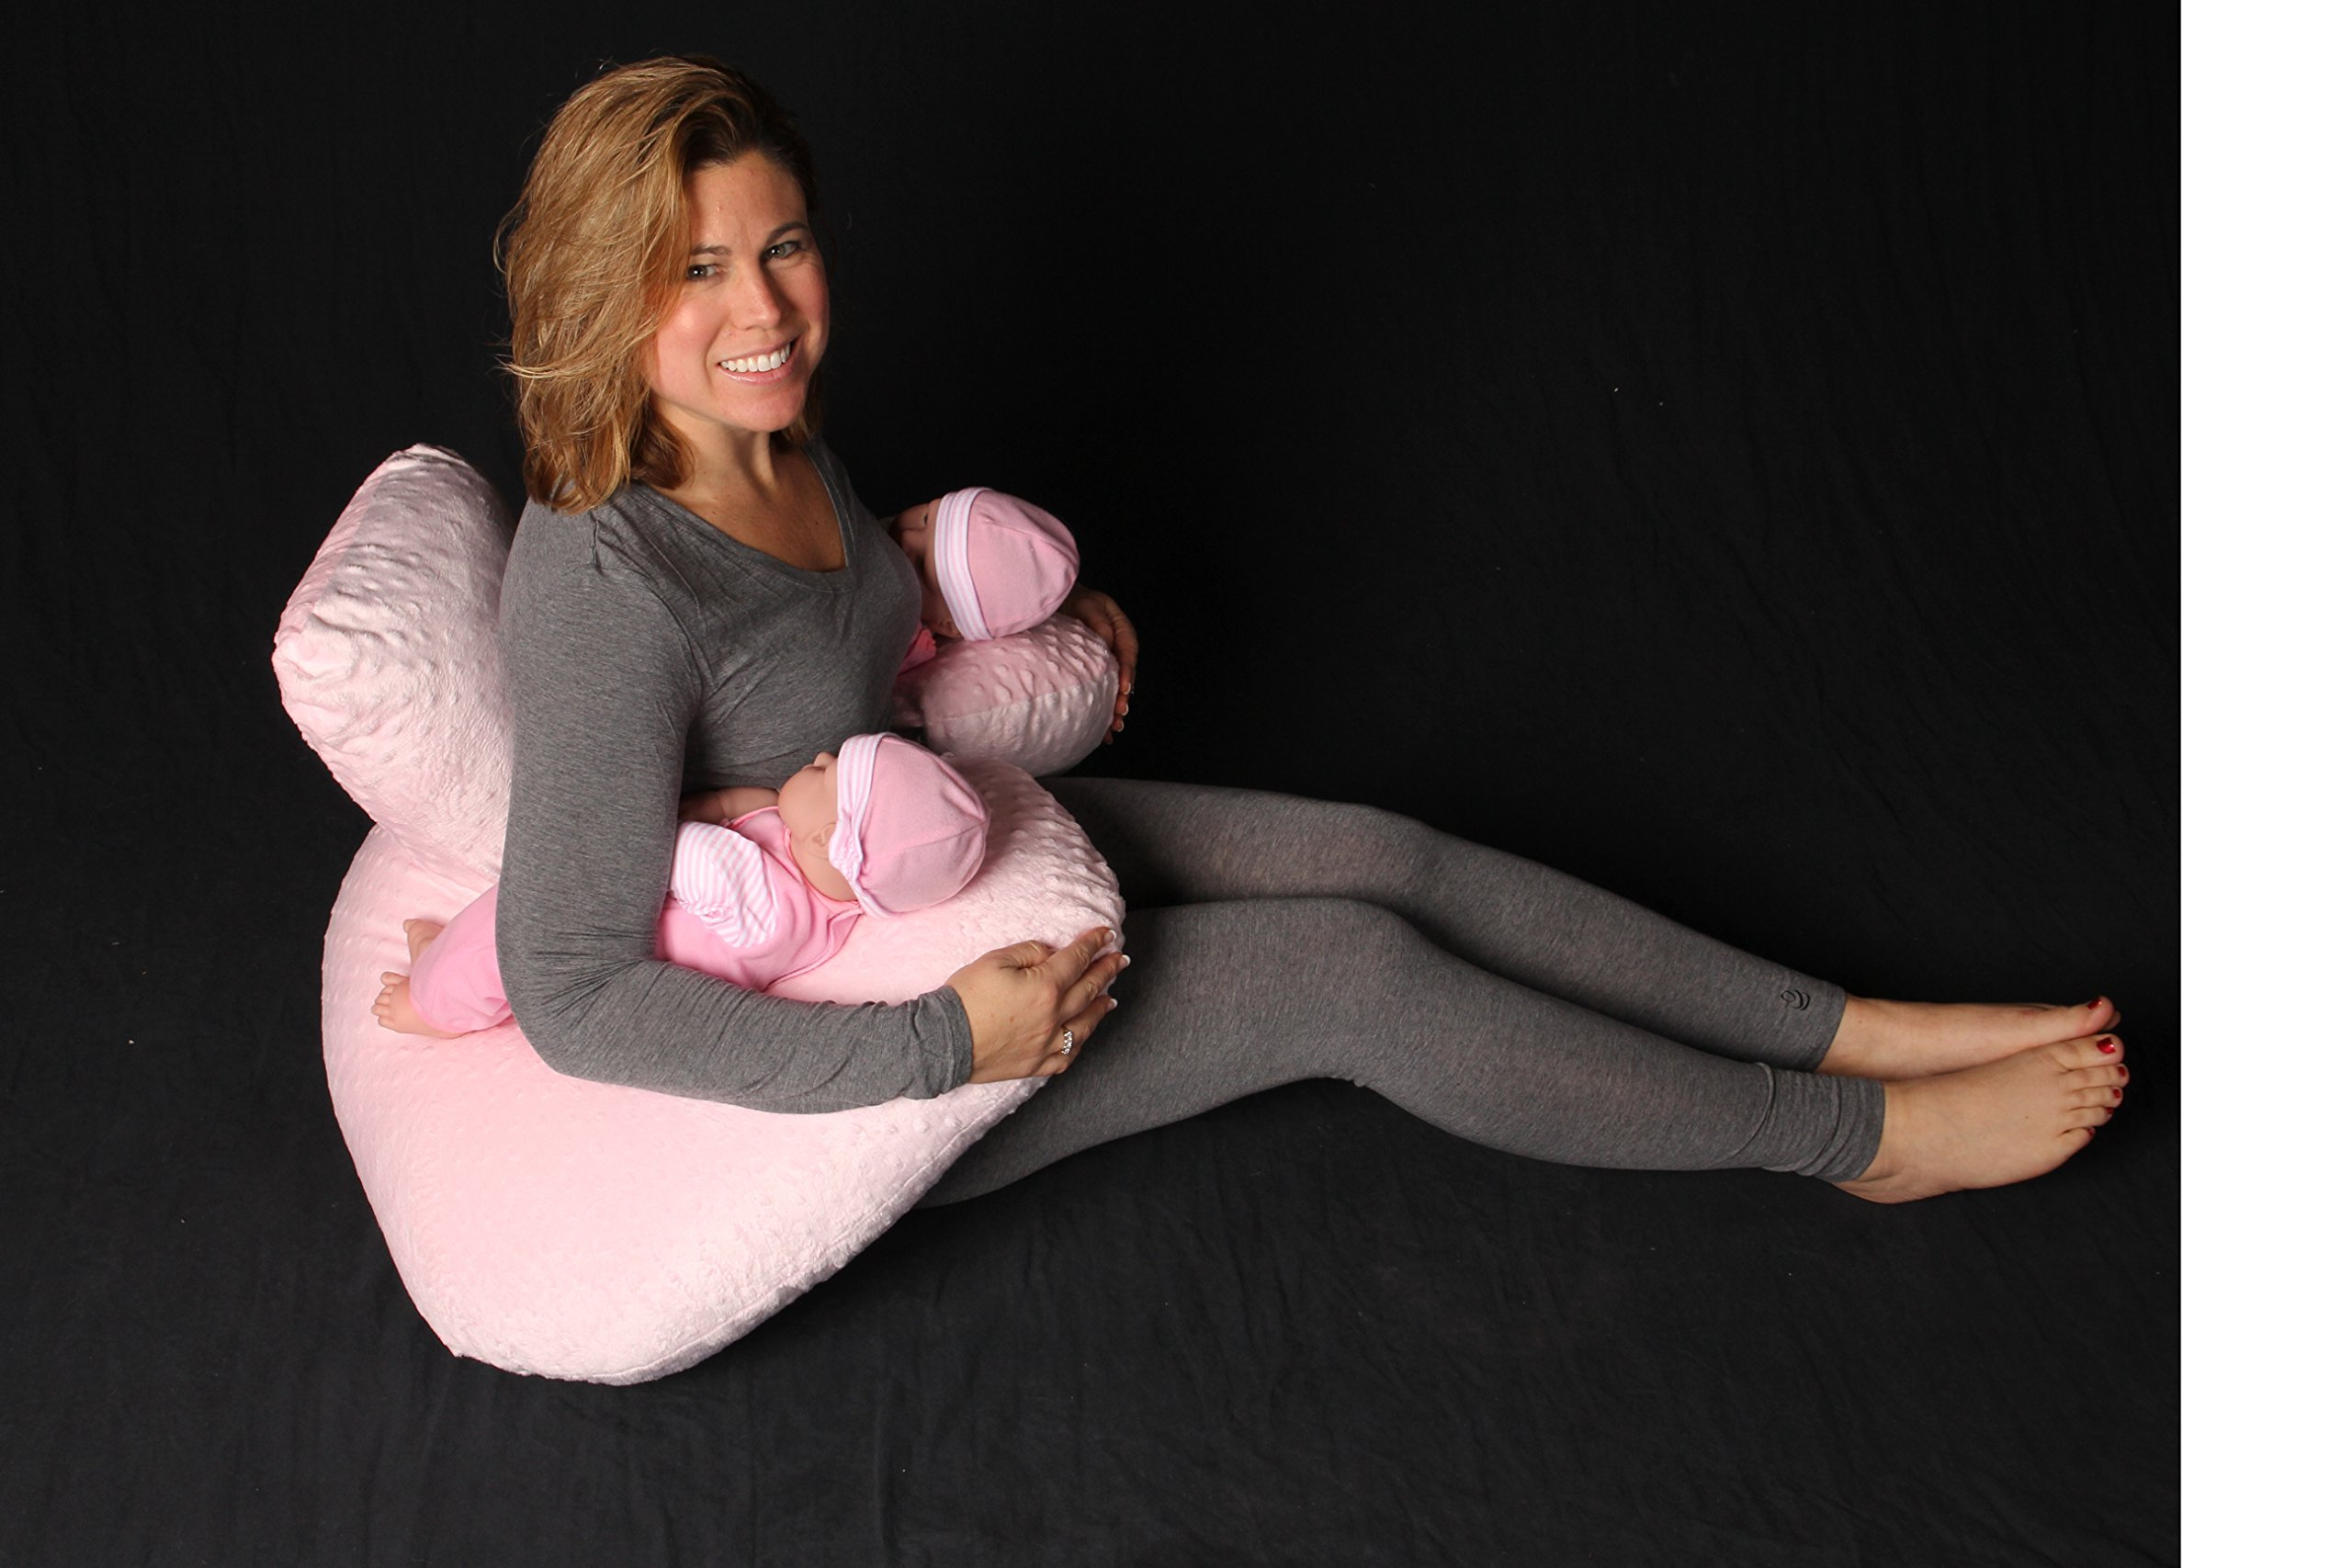 THE TWIN Z PILLOW - PINK The only 6 in 1 Twin Pillow Breastfeeding, Bottlefeeding, Tummy Time & Support! A MUST HAVE FOR TWINS! - CUDDLE PINK DOTS by Twin Z PIllow (Image #4)